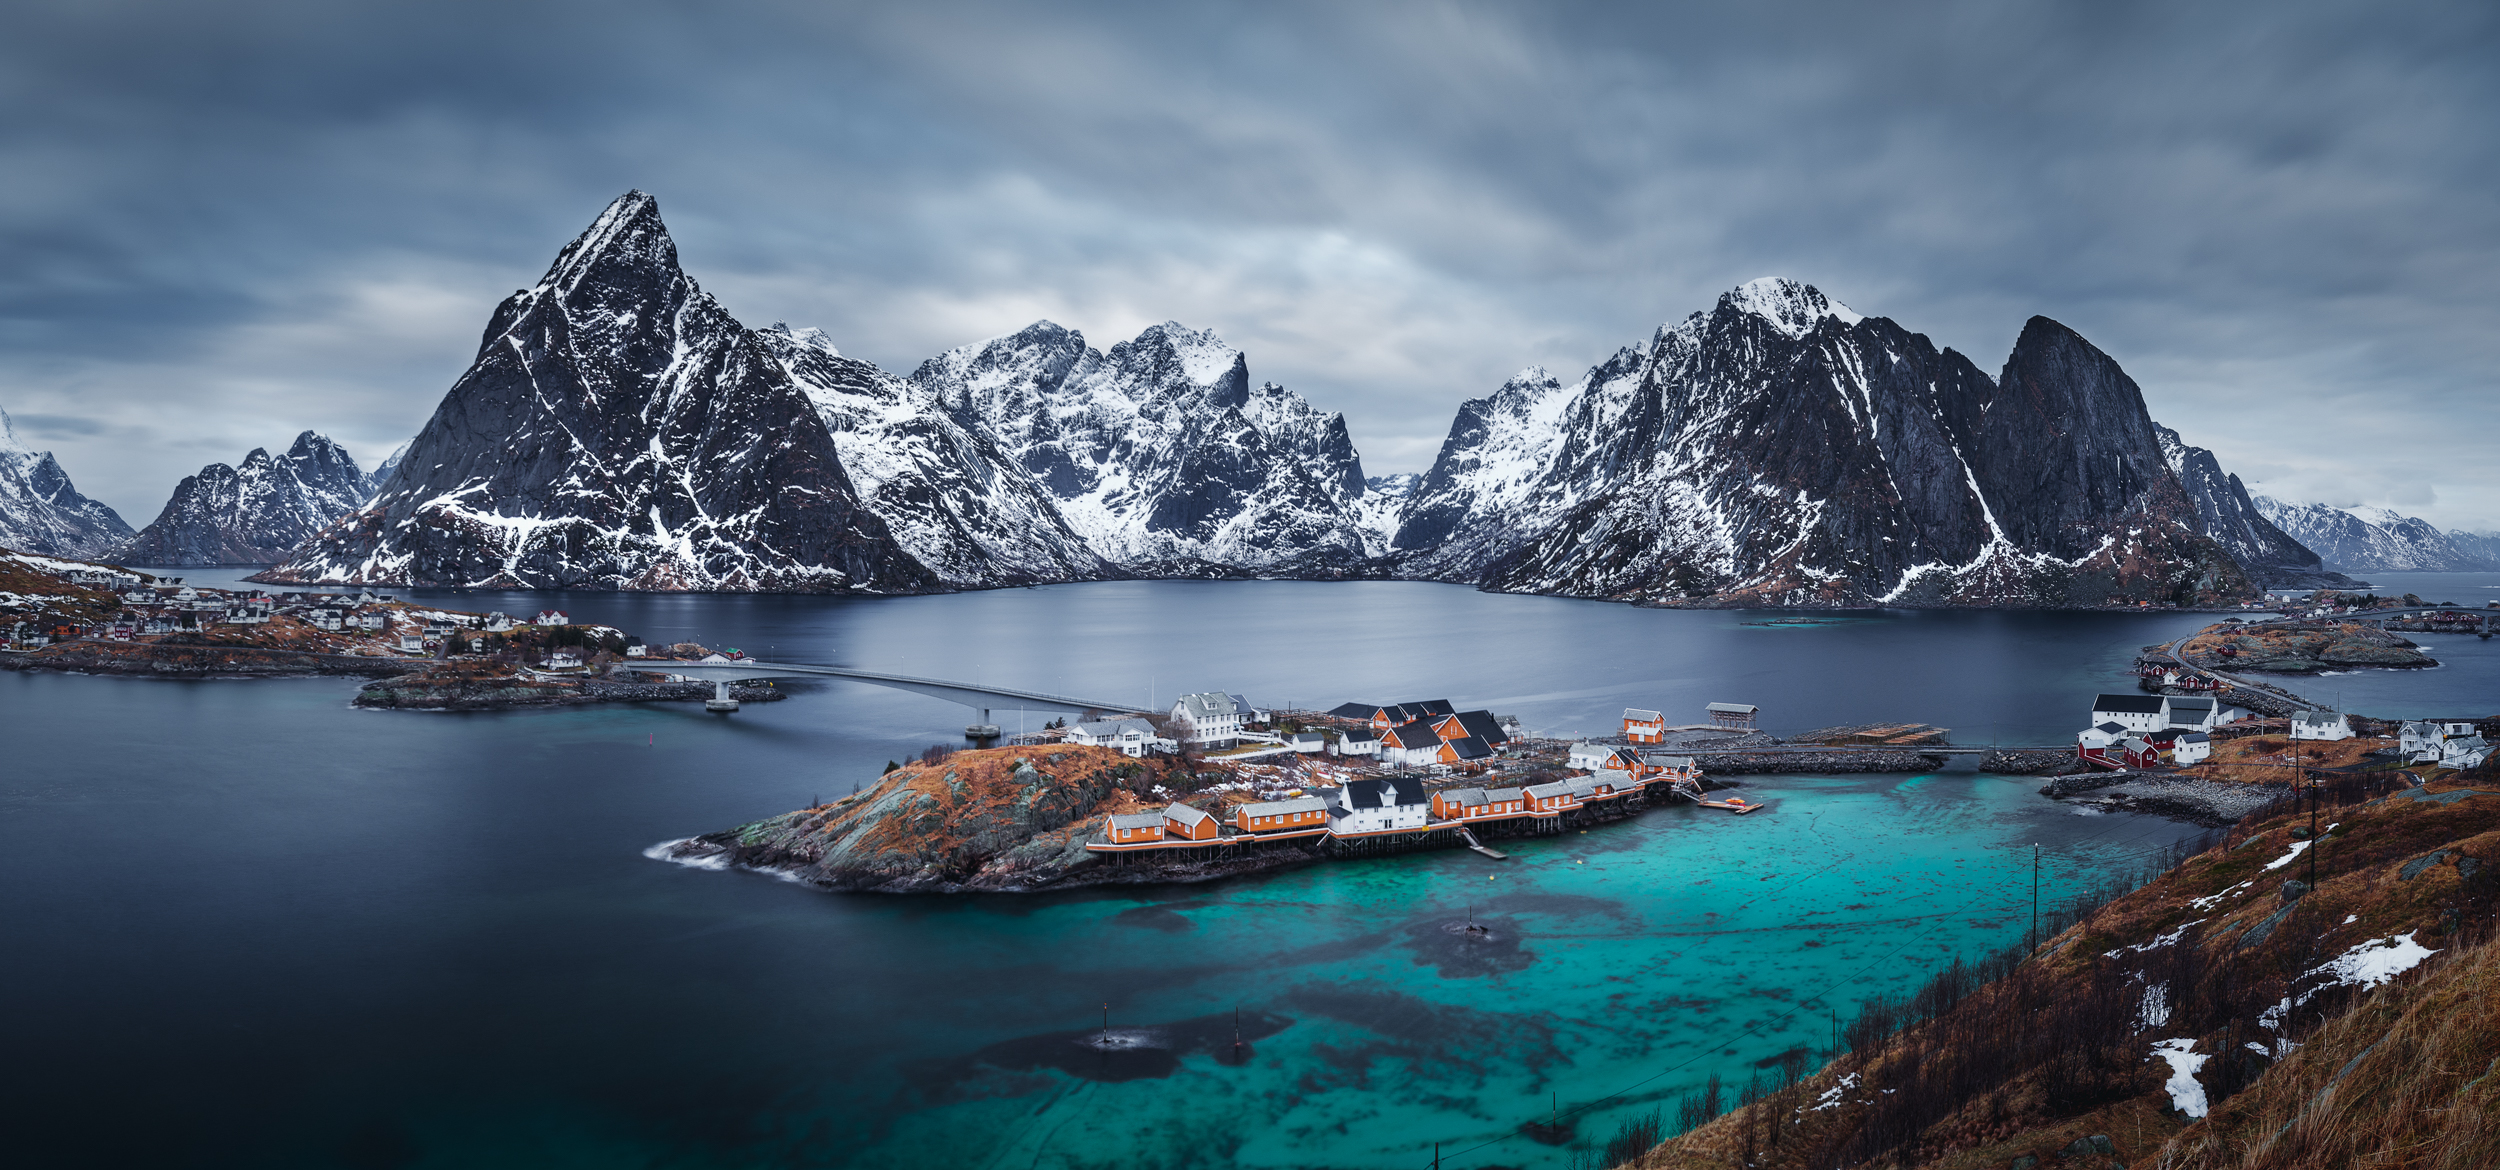 One of my favorite views of Reine Village and it's stunning mountain peaks.